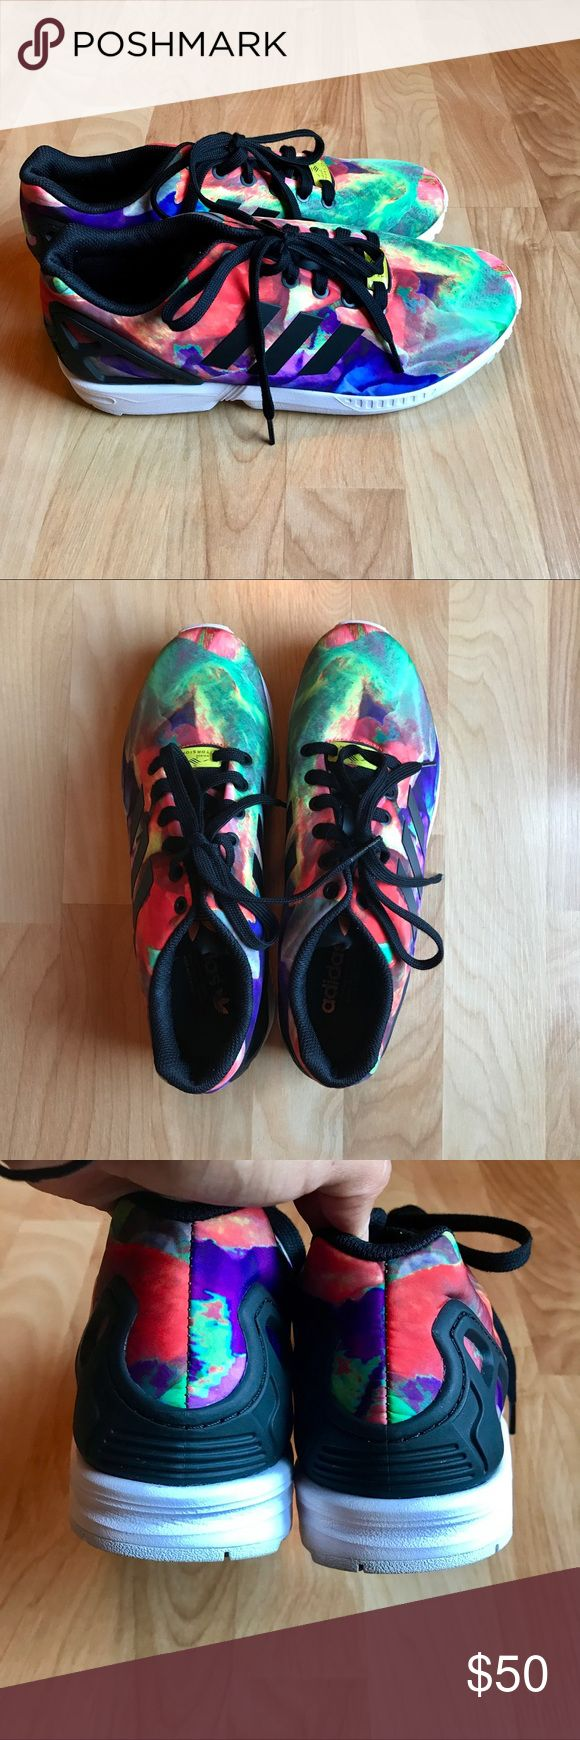 Adidas Torsion ZX Flux tie dye sneakers Practically brand new tie dye Adidas Torsion ZX Flux sneakers size women's 9.5. They have only been worn a couple times and are in excellent condition. If you have any questions please let me know. Reasonable offers accepted😊❤️ adidas Shoes Sneakers